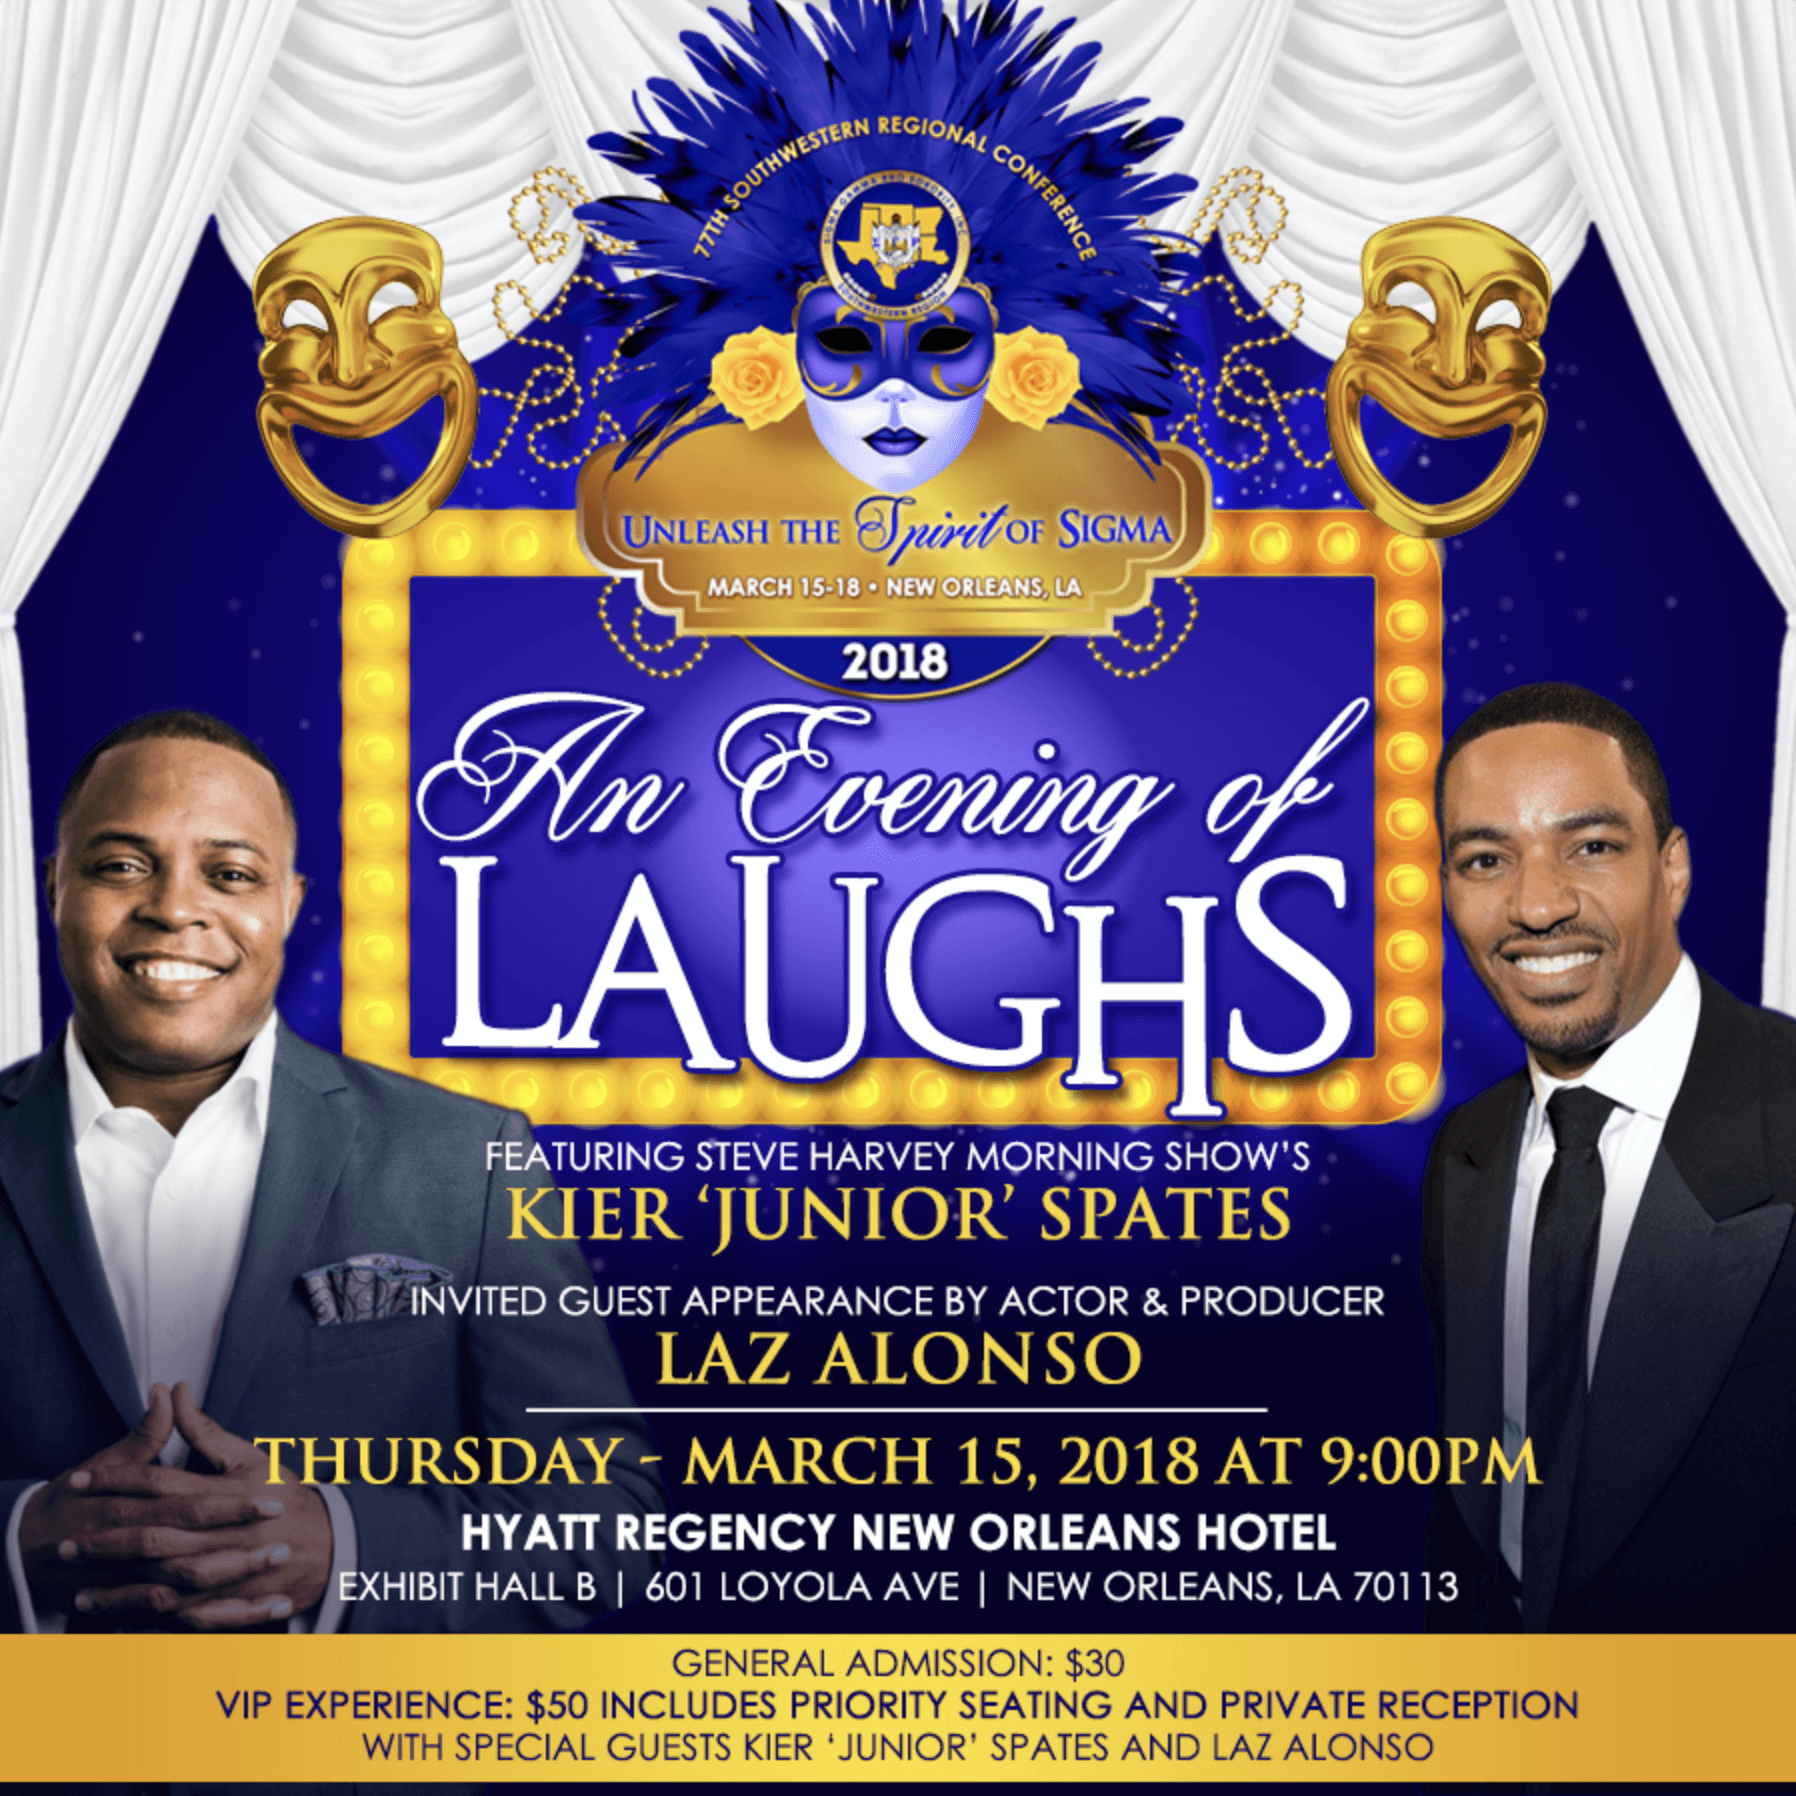 Sigma gamma rho presents an evening of laughs featuring kier comedy show biocorpaavc